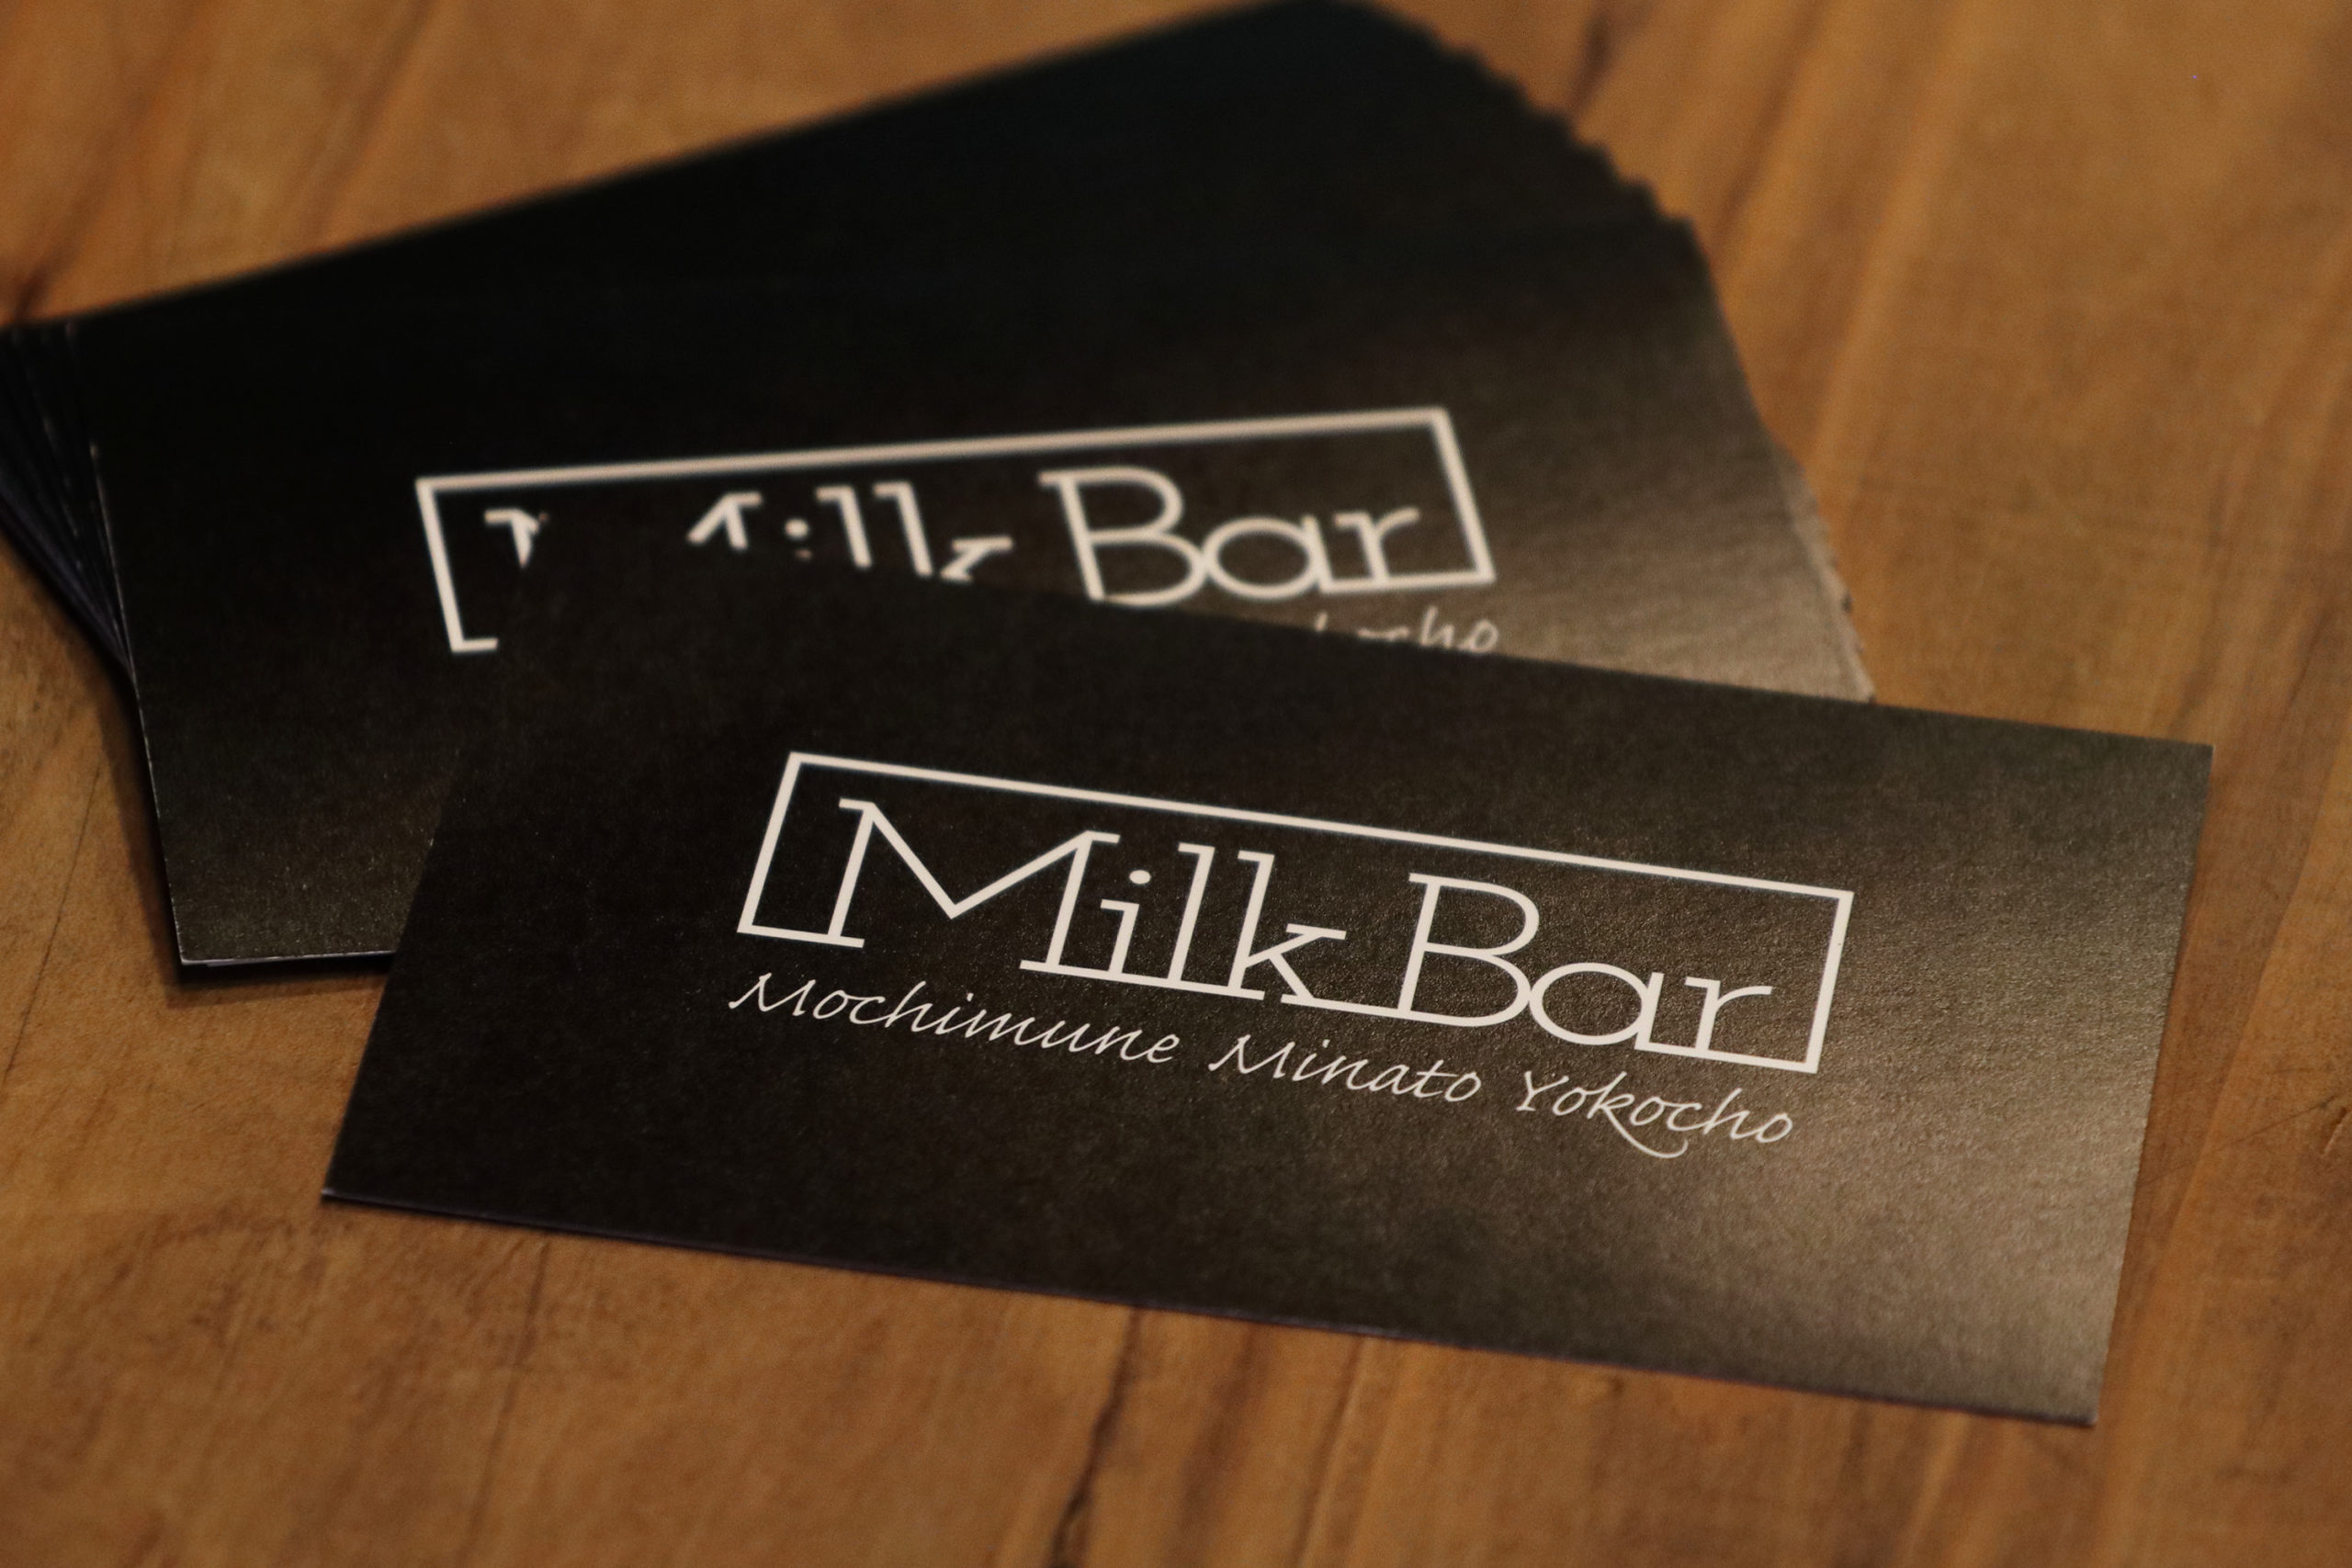 https://www.milkbar.jp/wp/wp-content/uploads/2020/09/others_coupon-scaled.jpg